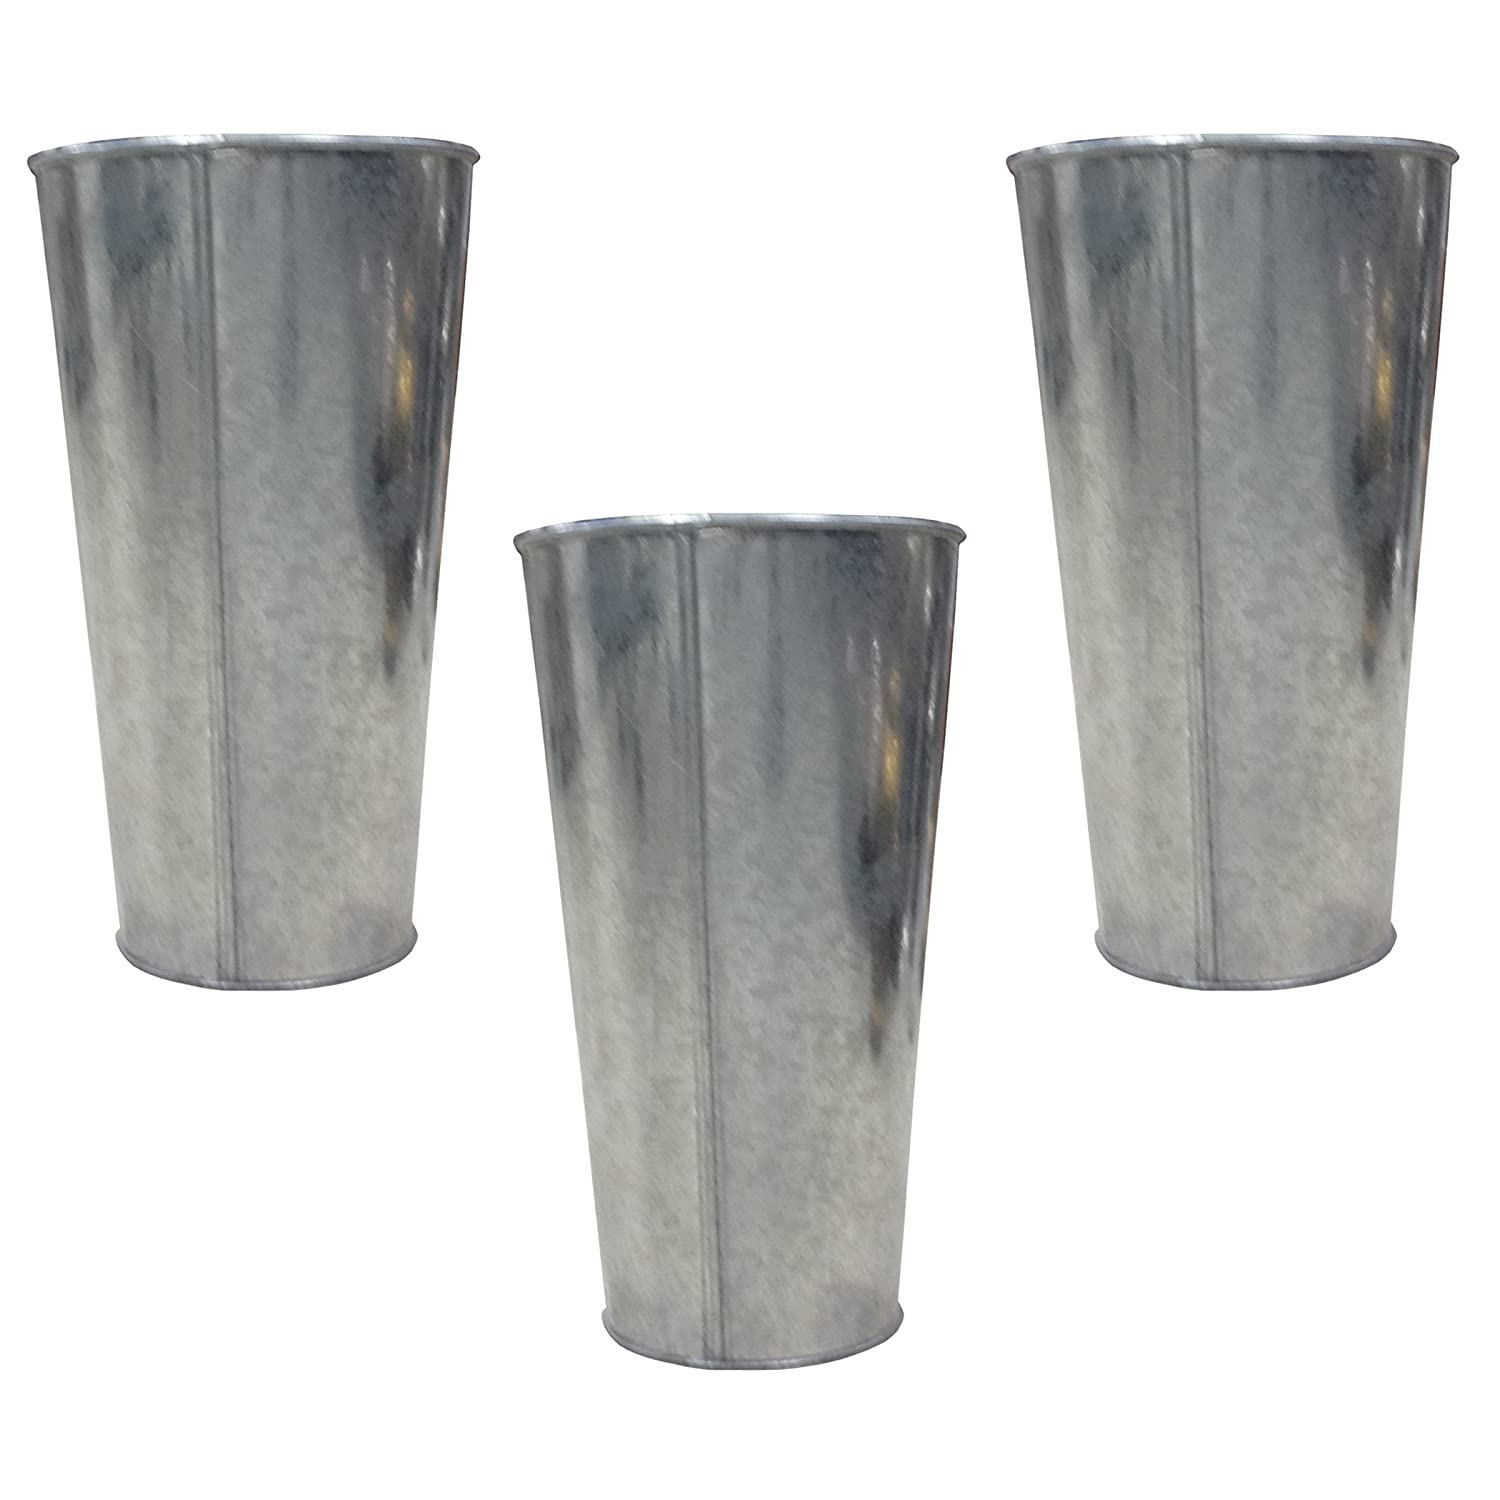 Hosley's Set of 3 Galvanized Vases/French Buckets - 9 High. Ideal for DIY Craft and Floral Projects, Party Favors, Festivities, Wedding O4. HG Global